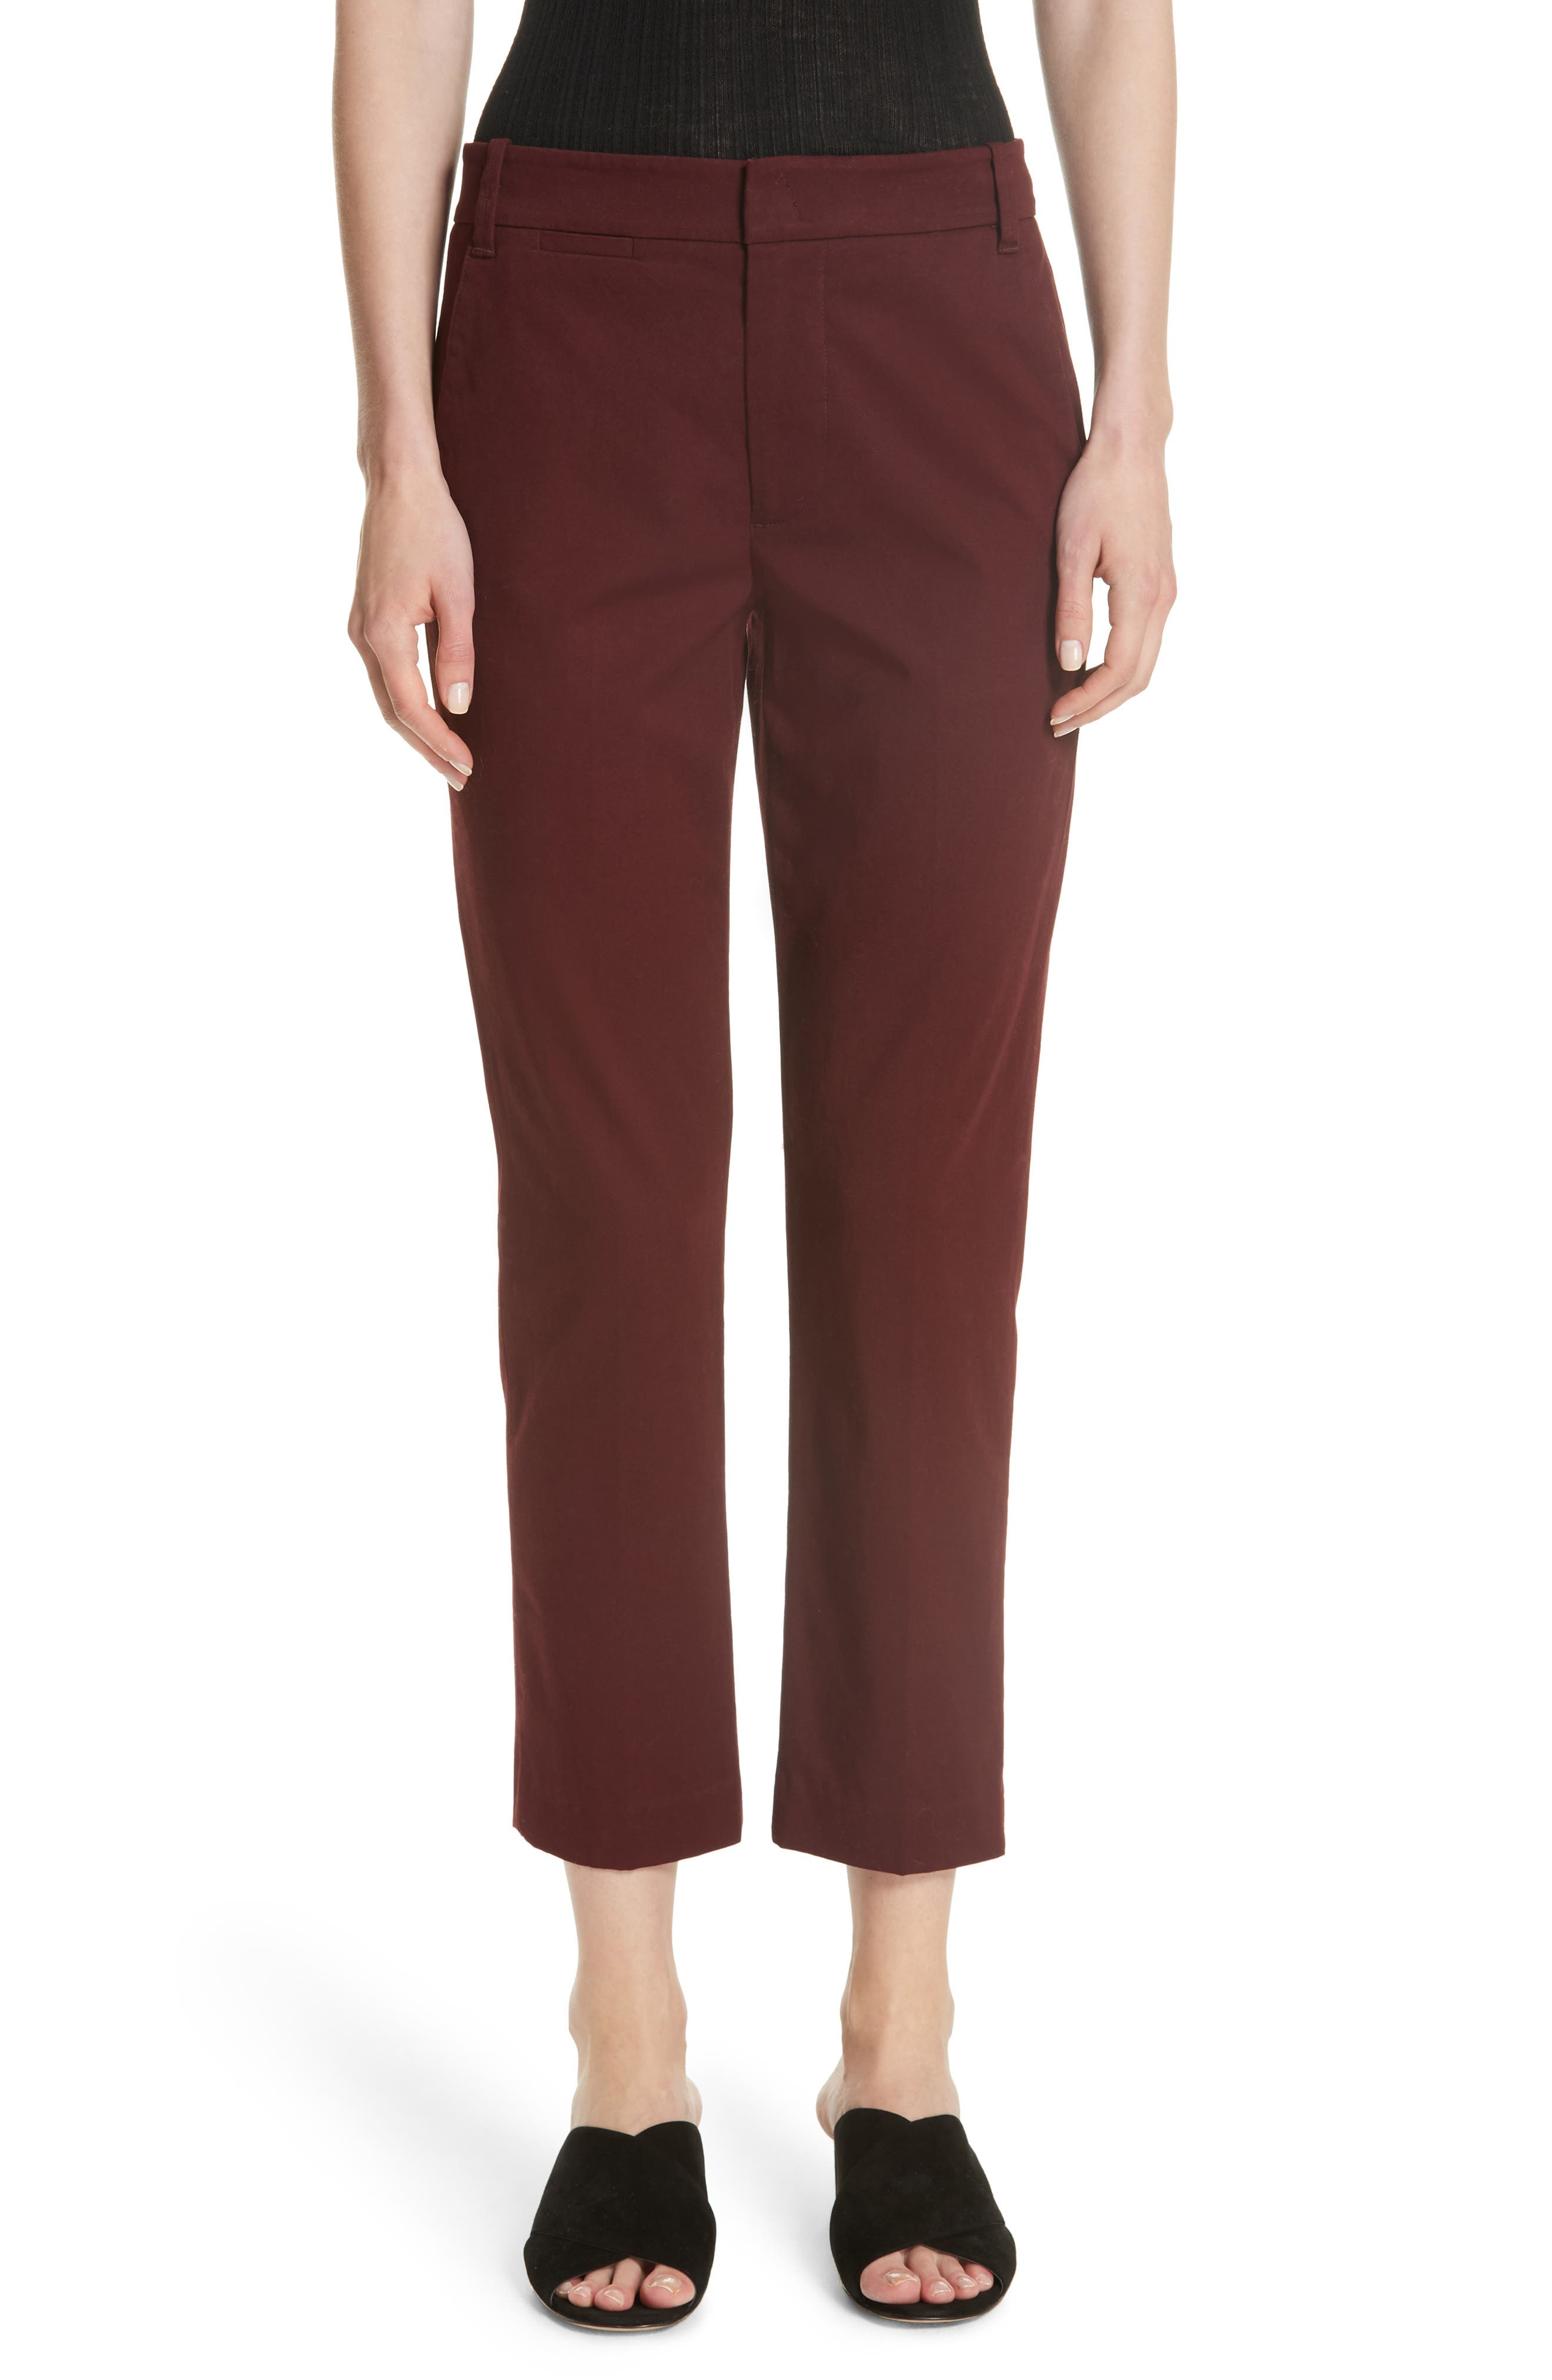 Coin Pocket Chino Pants,                         Main,                         color, Black Cherry